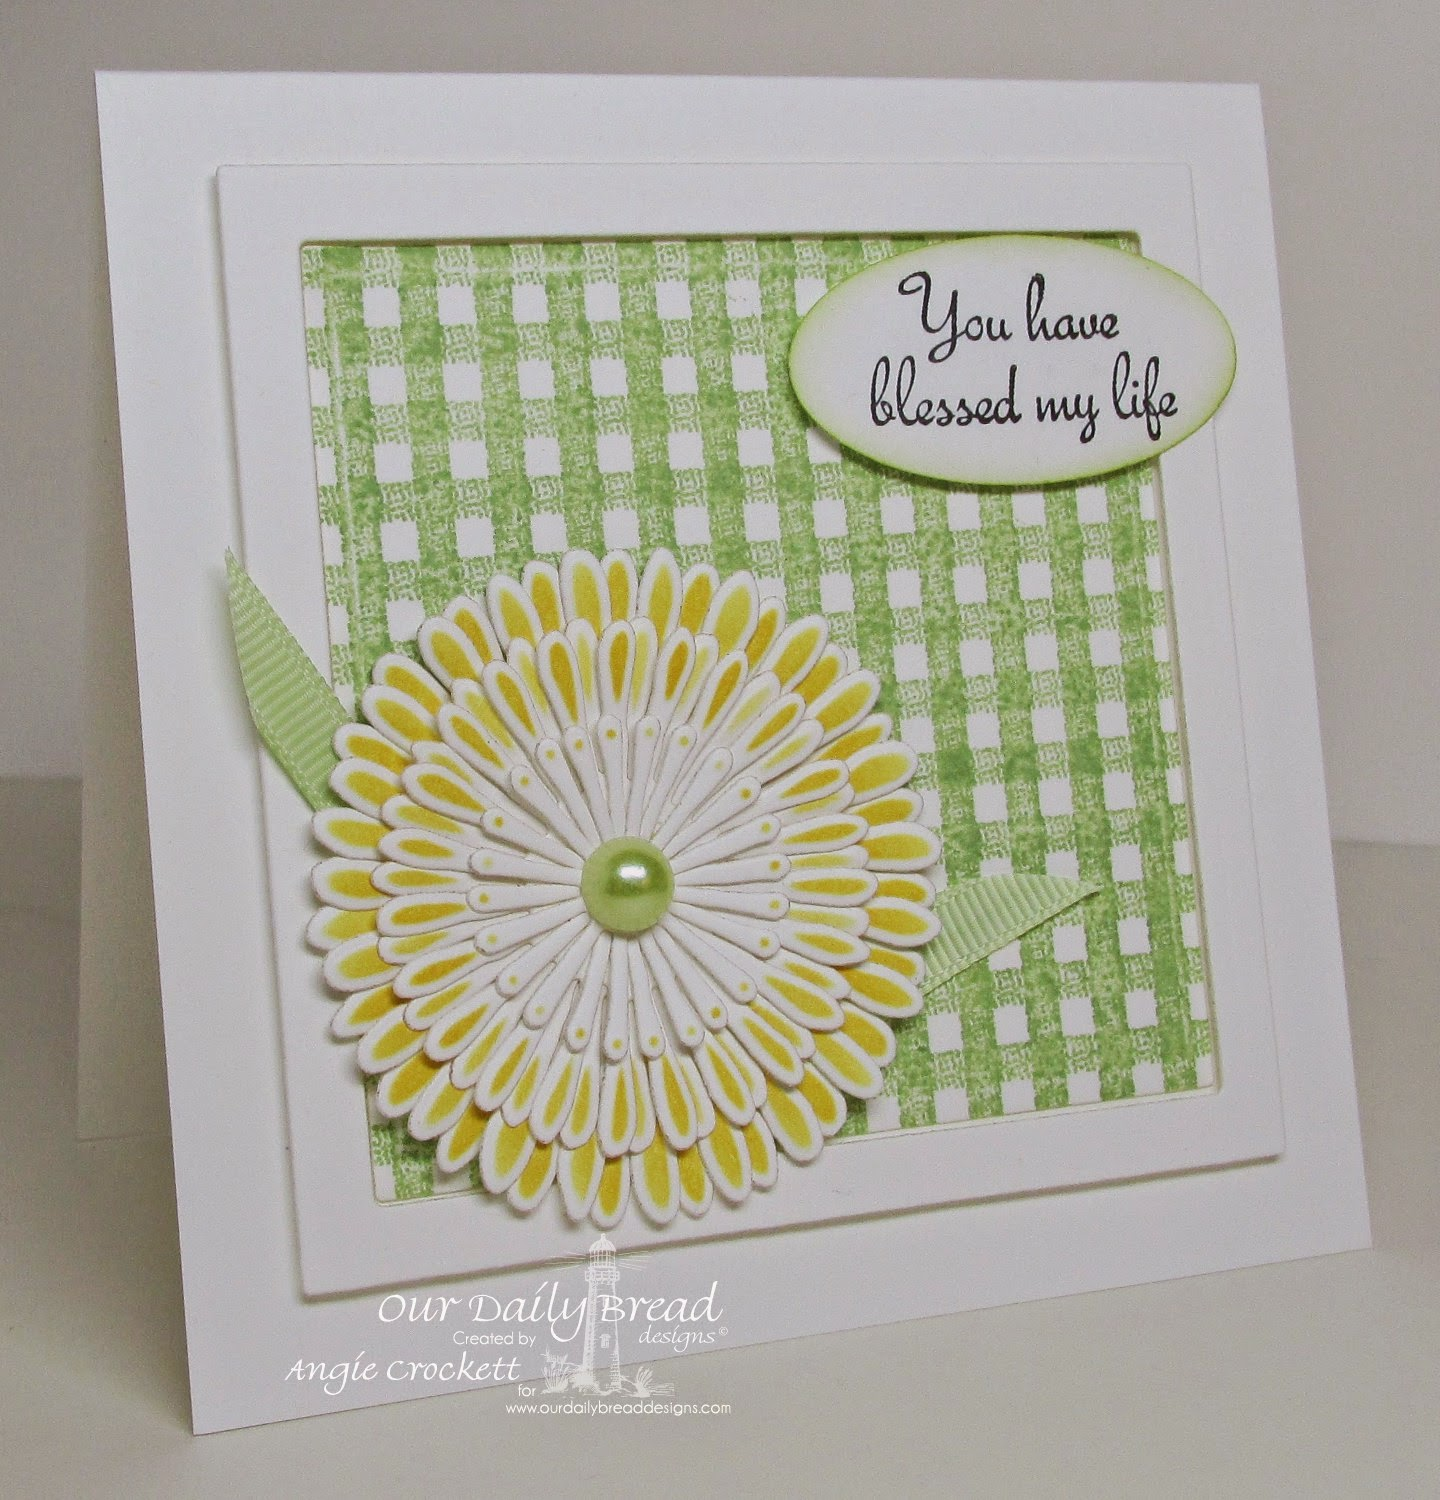 ODBD Gingham Background, Rose, ODBD Custom Asters and Leaves Die Set, Card Designer Angie Crockett